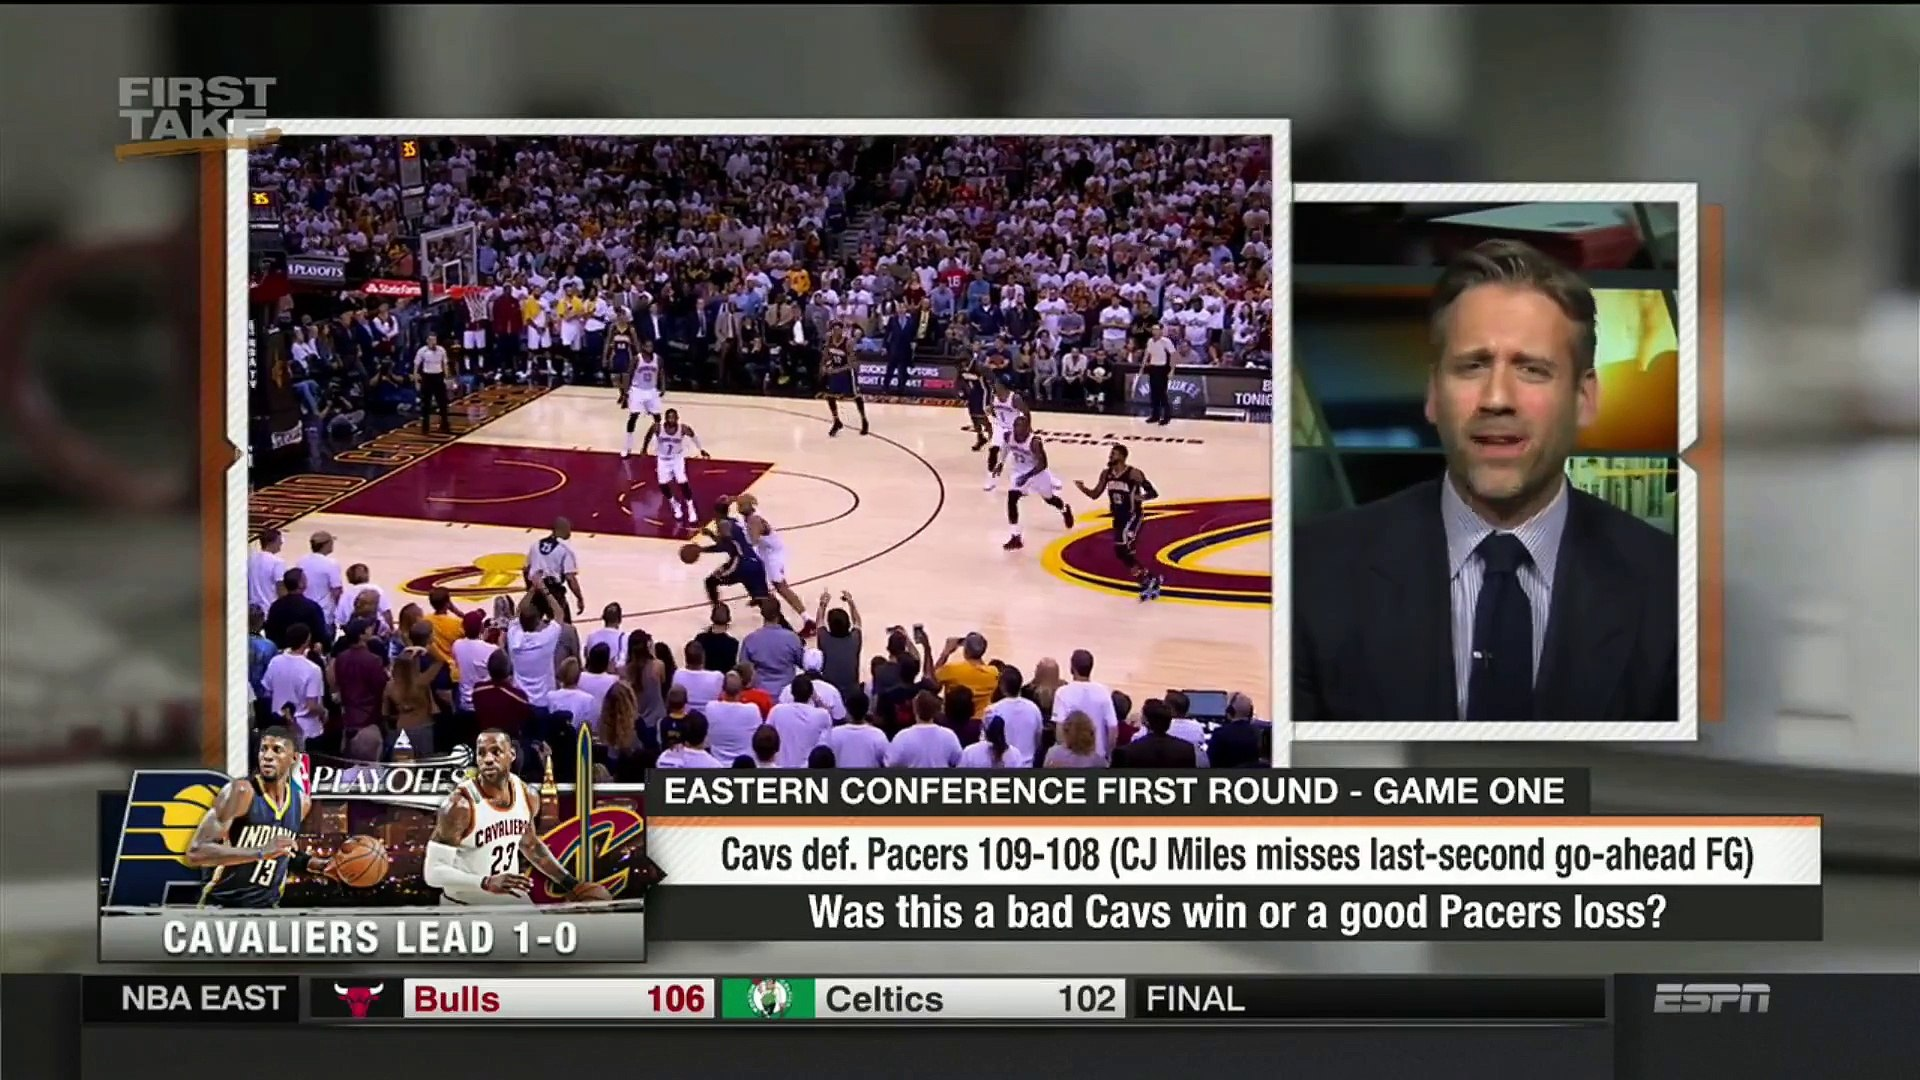 First Take   Cavs def. Pacers 109-108 - A bad Cavs win or a good Pacers loss   Apr 17, 2017